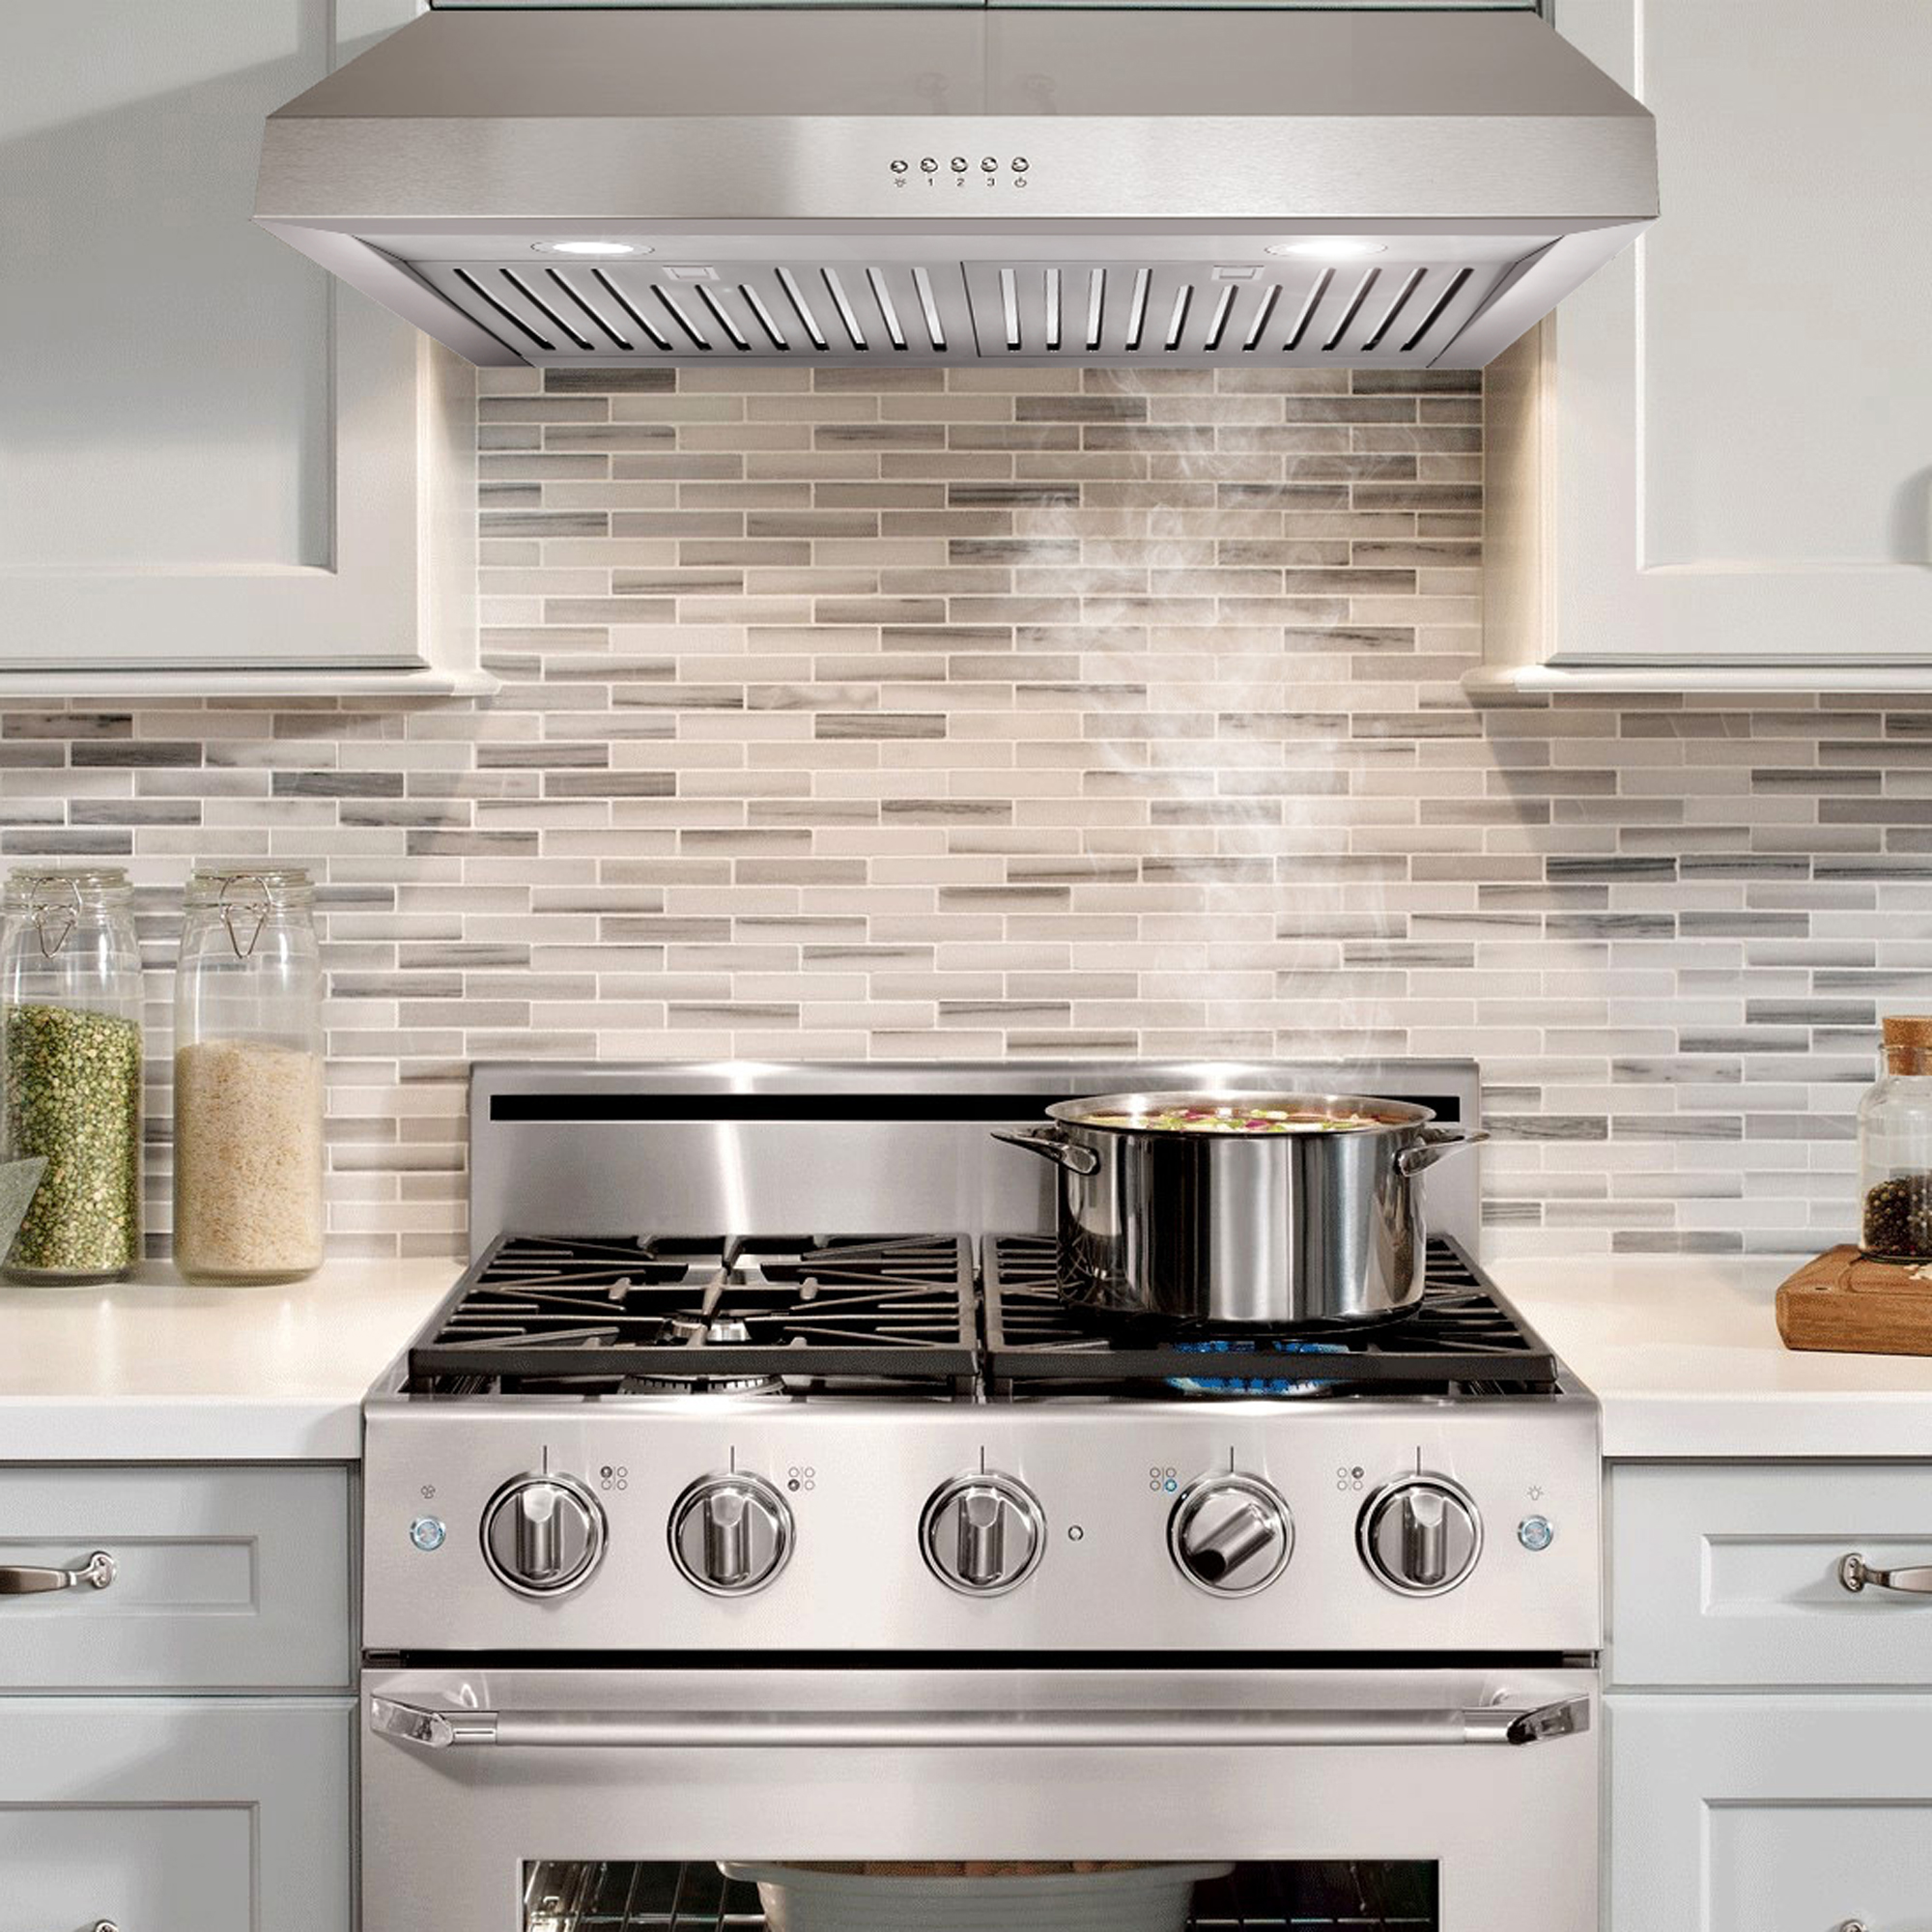 Every Kitchen Should Have a Range Hood